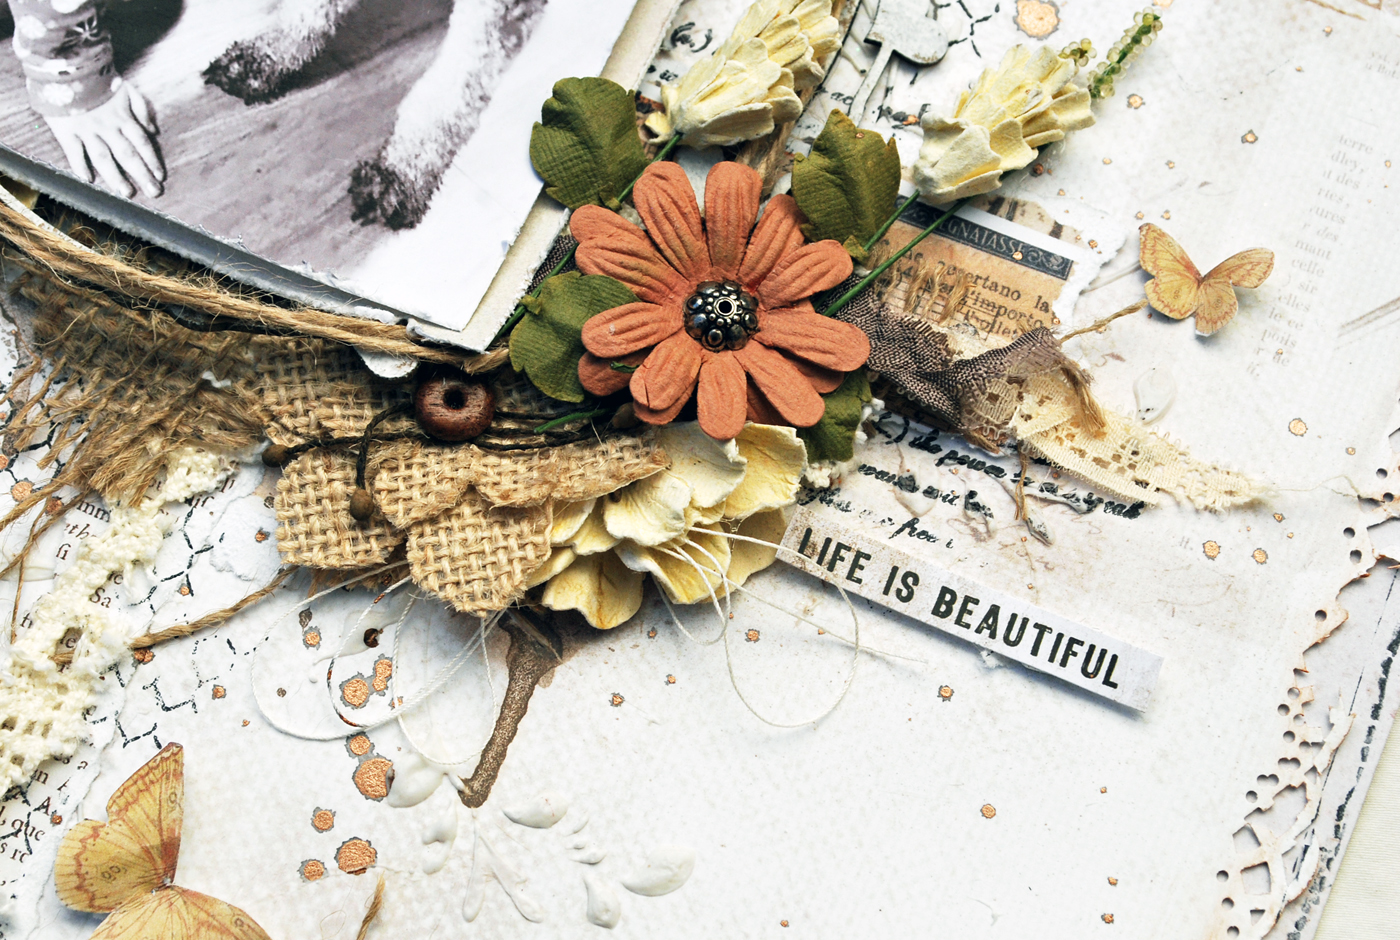 Life is beautiful vintage artistry collection with shona to add layers behind the photo i added in burlap ribbon and pieces from ephemera cut out sheet i just love these cut out sheets in the collectionsit makes izmirmasajfo Gallery